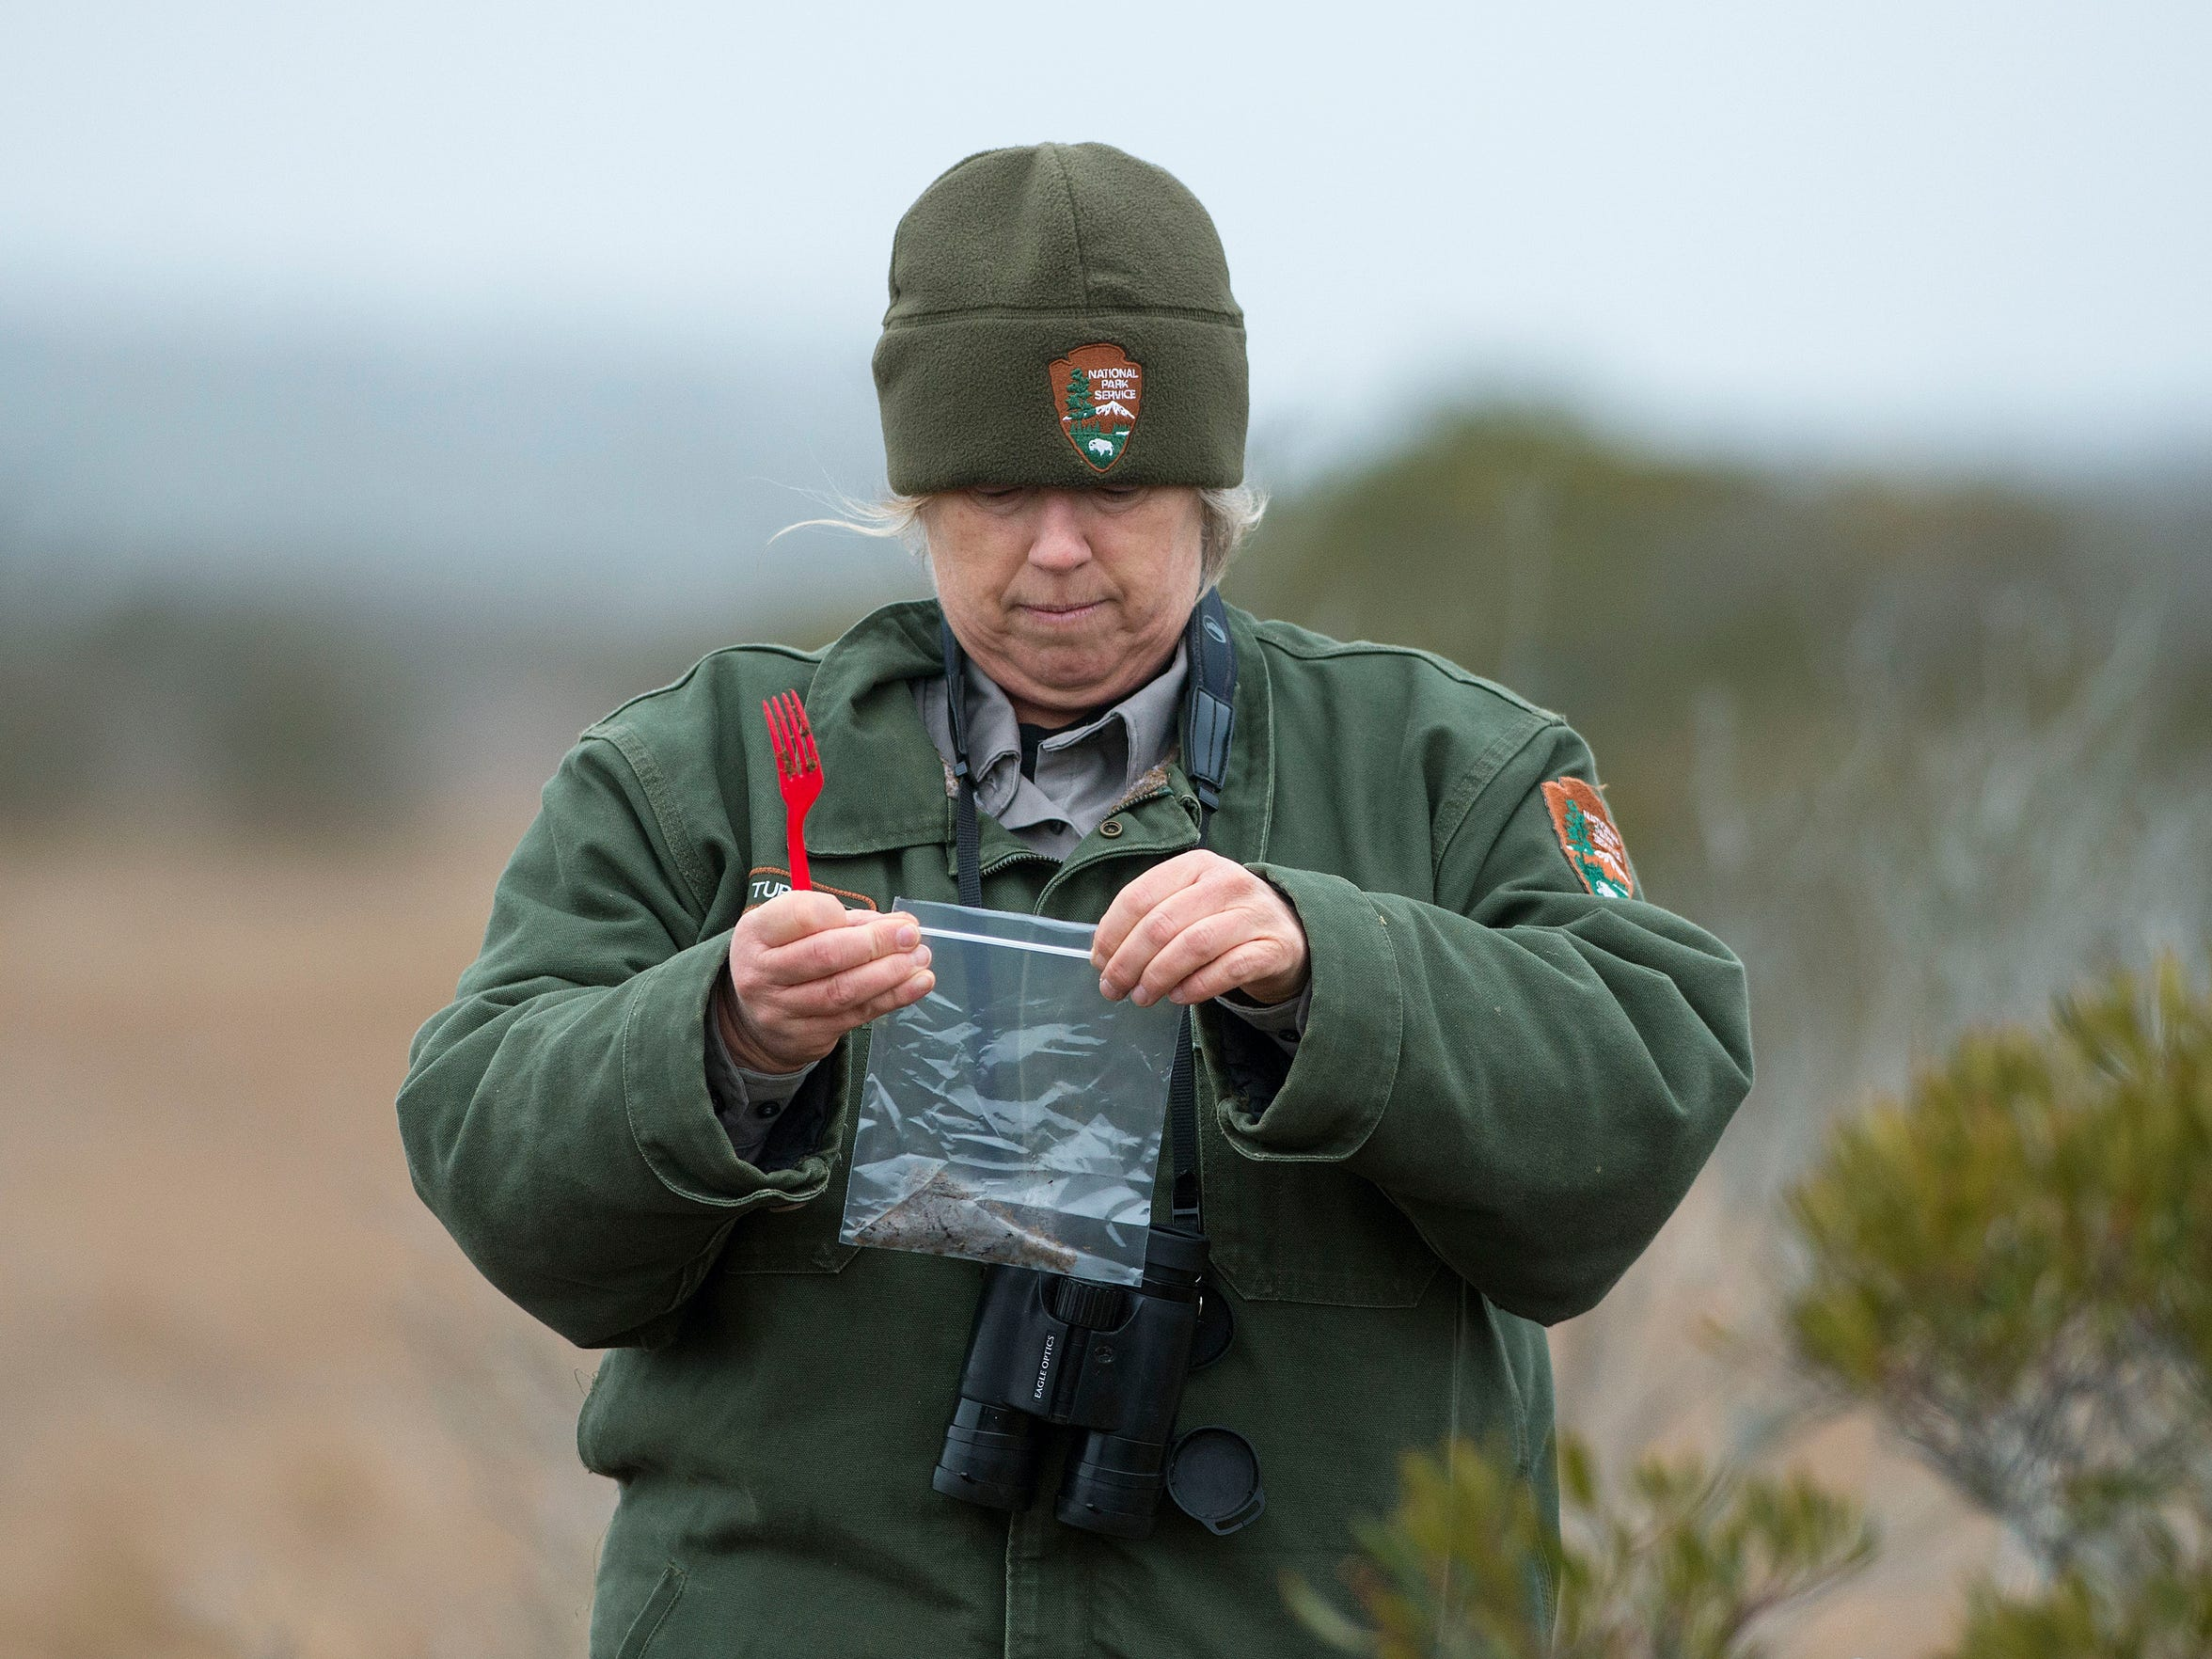 Allison Turner bags a sample of horse manure at Assateague